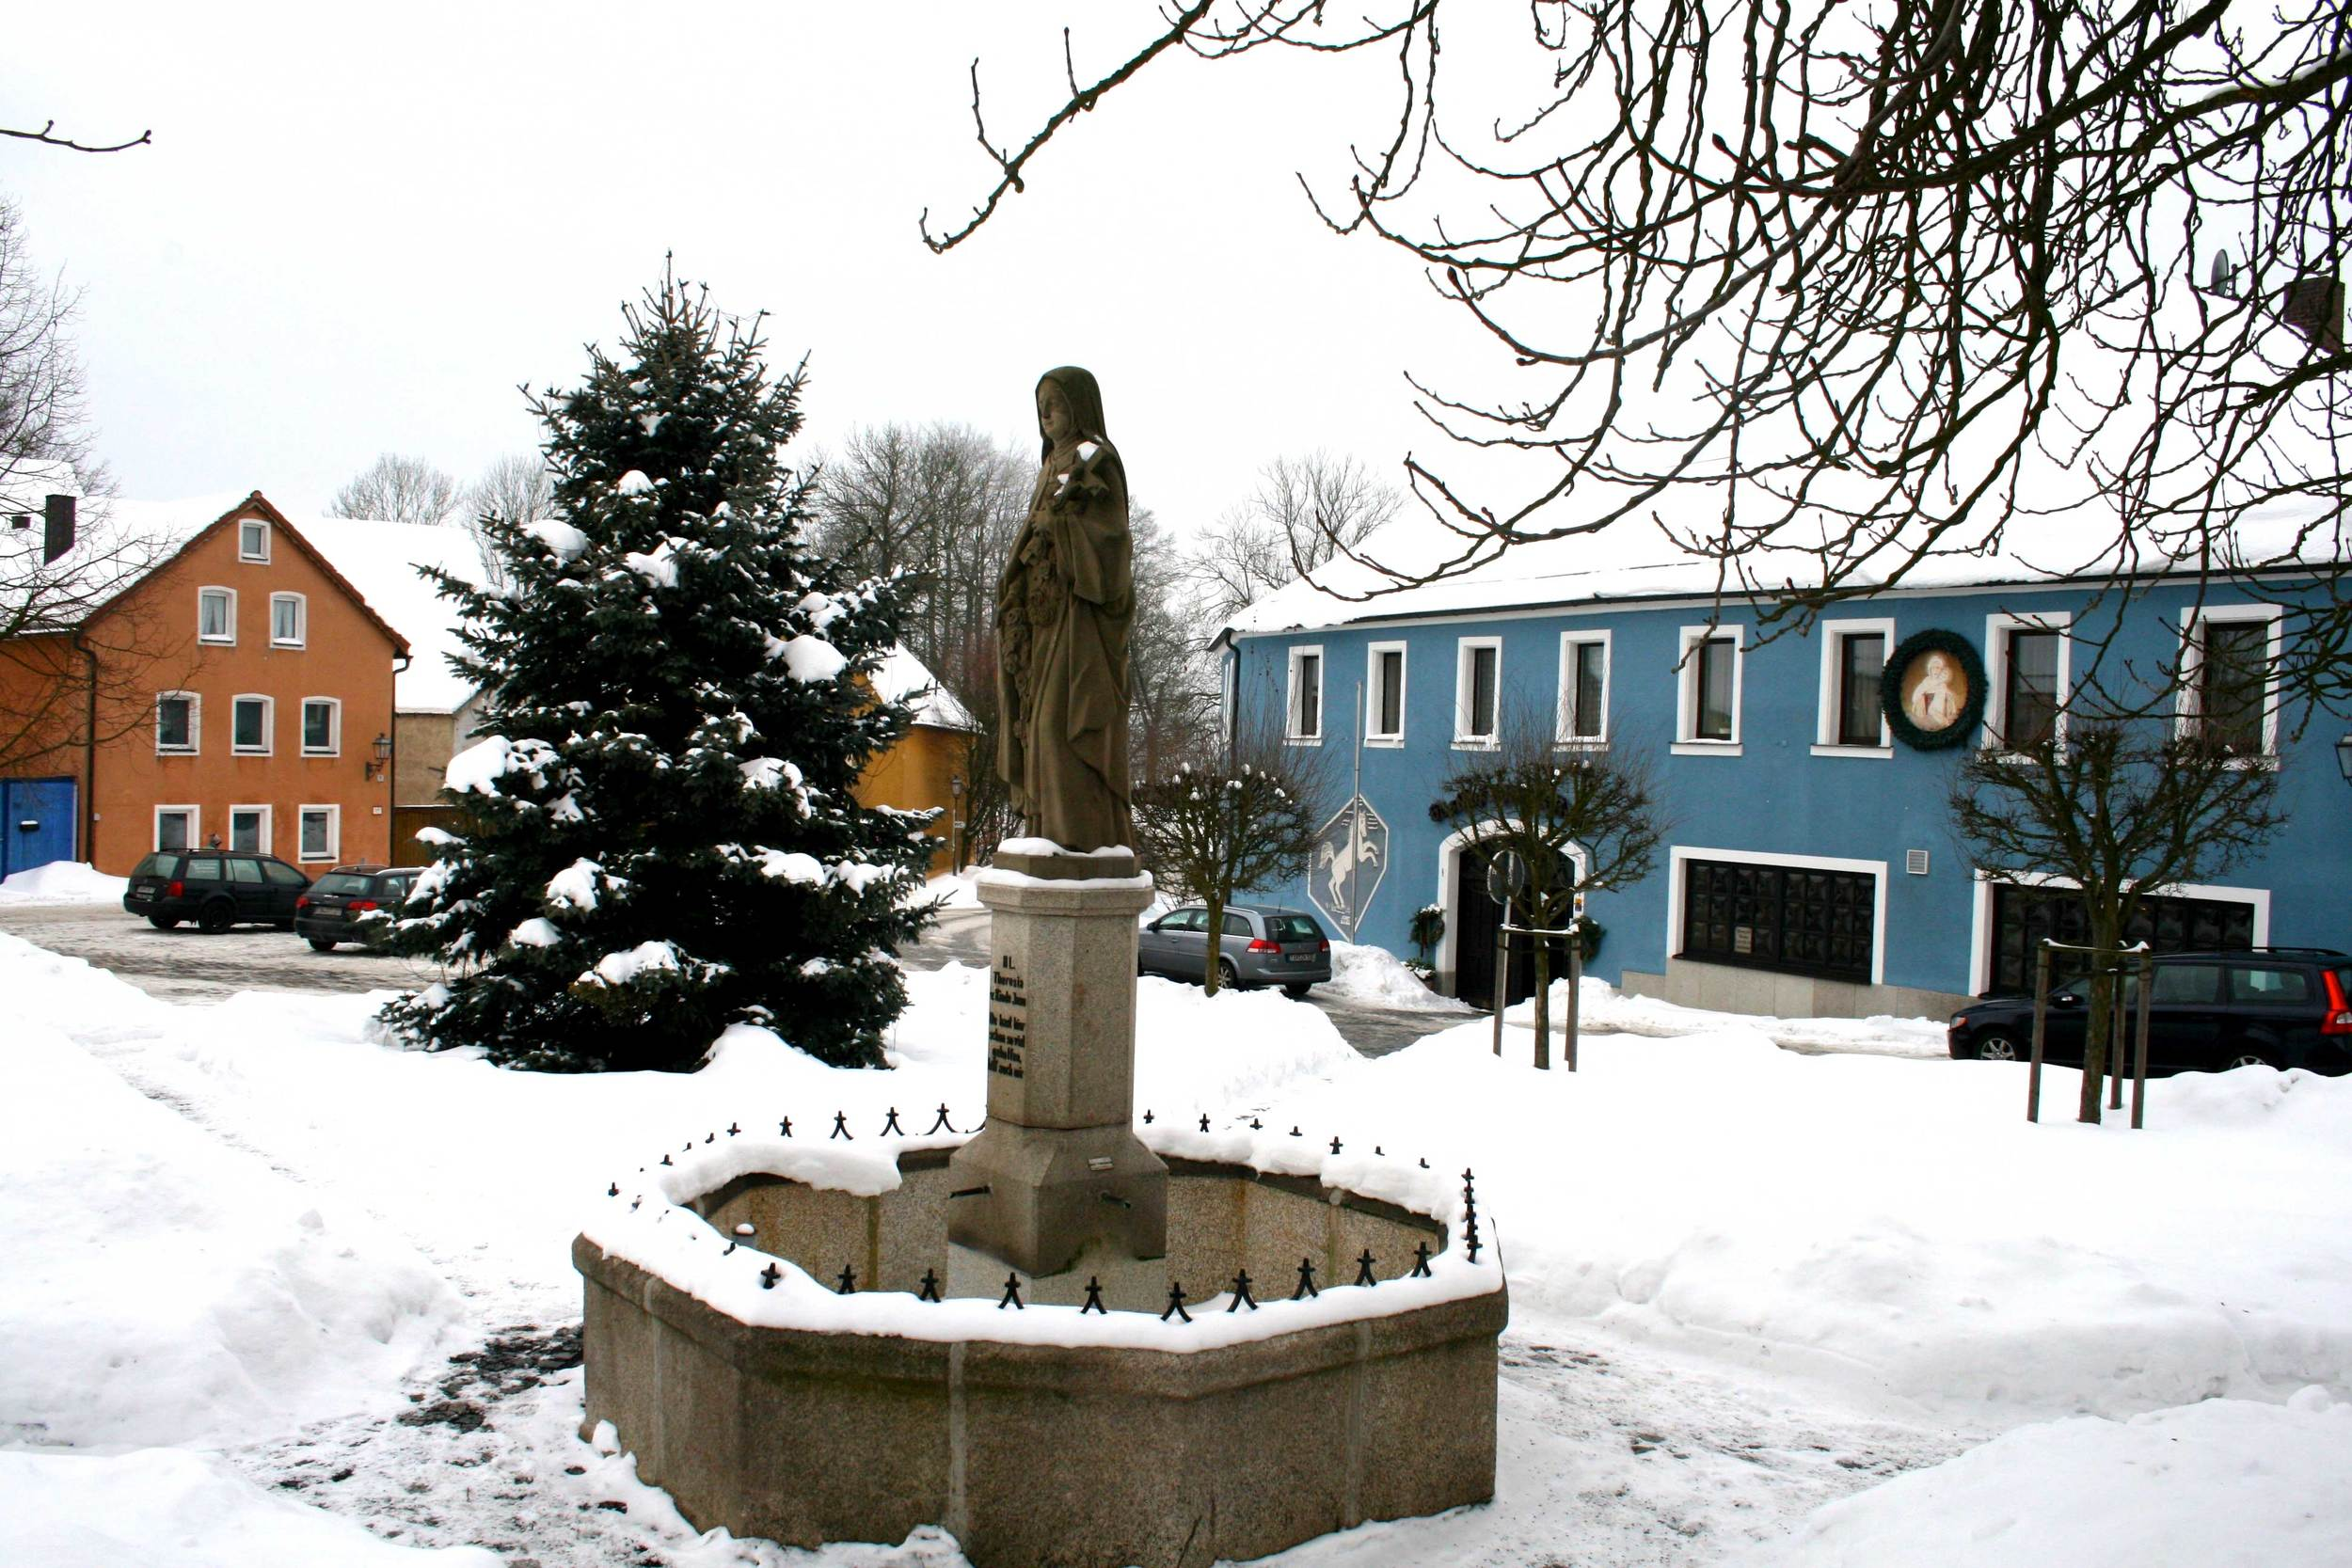 Image©sourcingstyle.com, statue of Little Flower, Saint Therese of Lisieux at Konnersreuth facing the house of Saint Therese Neumann (the house is not visible in the picture. The blue house is the hotel Weisses Ross, where I stayed during my stay.)